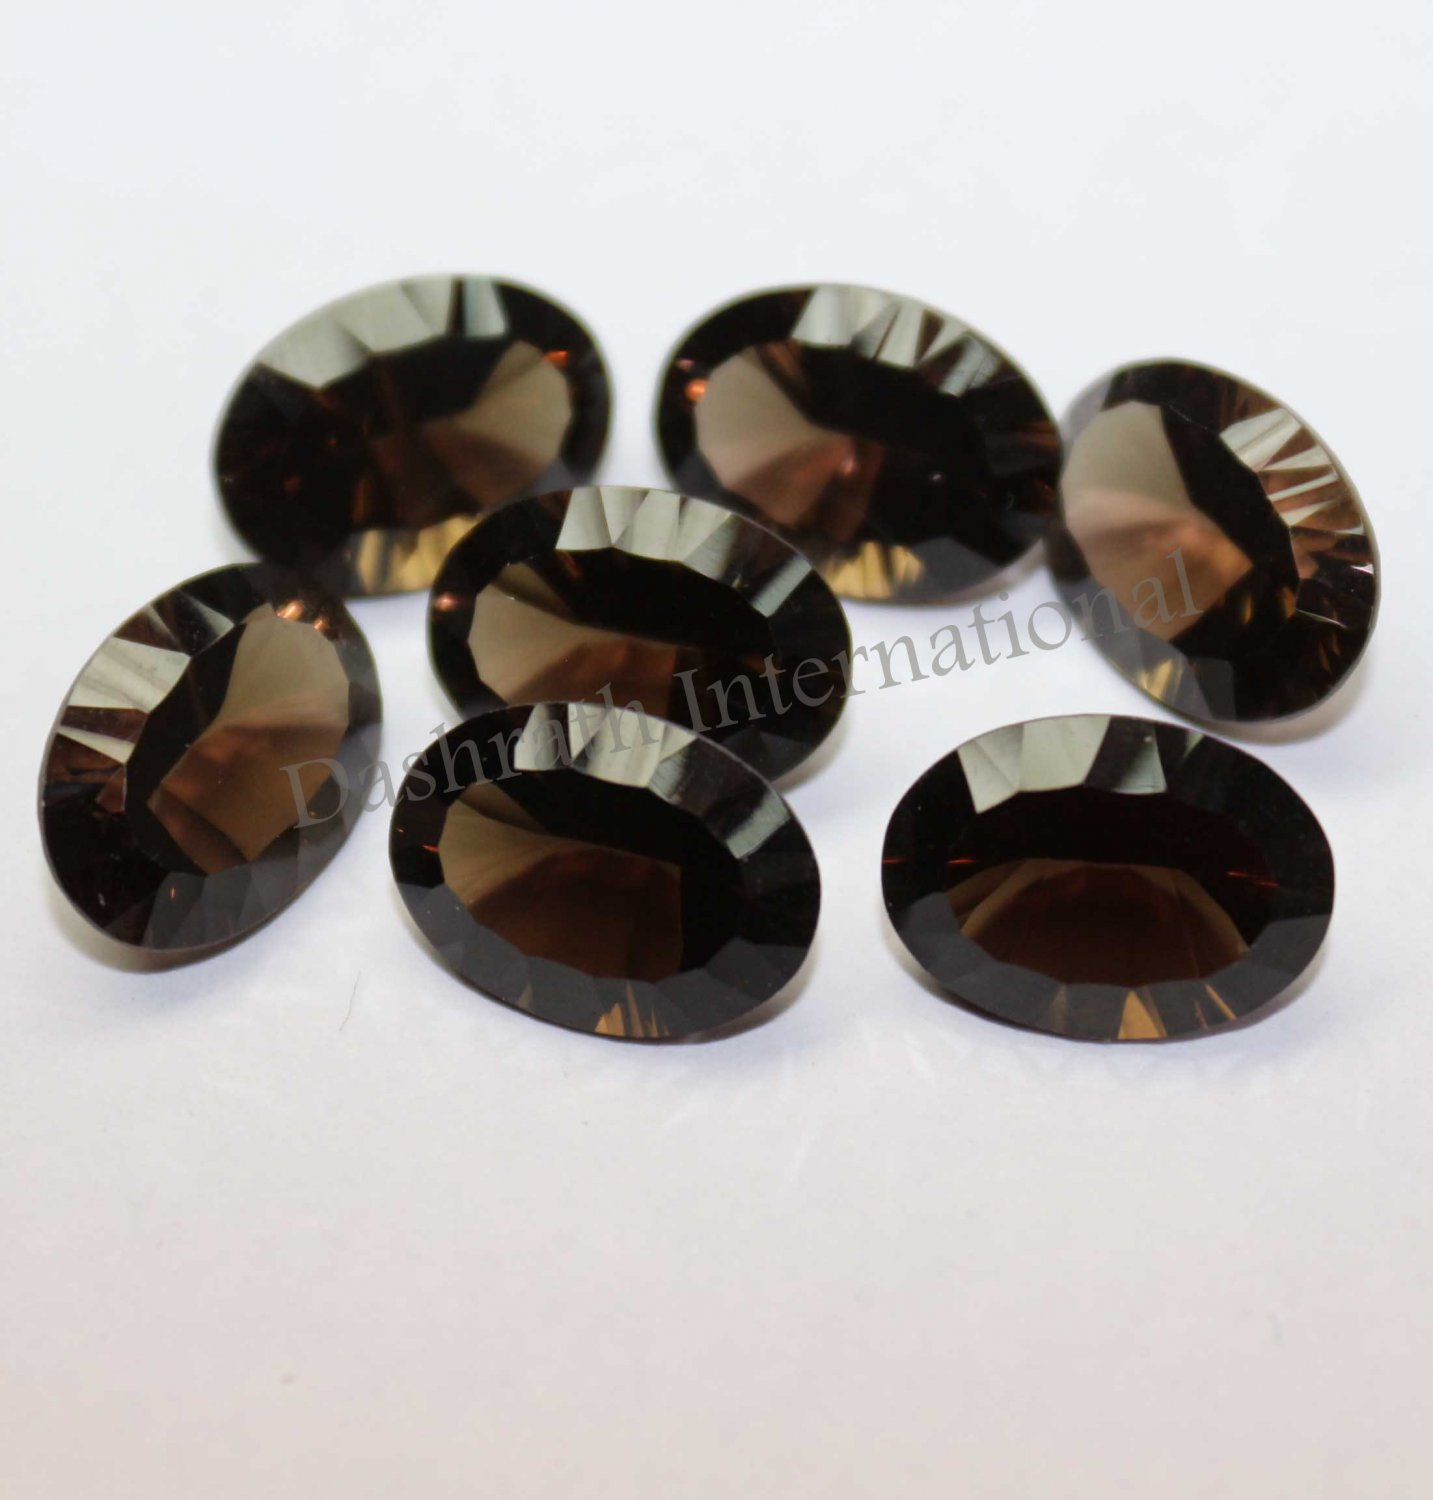 12x16mm Natural Smoky Quartz Concave Cut  Oval  5 Pieces Lot (SI) Top Quality  Loose Gemstone